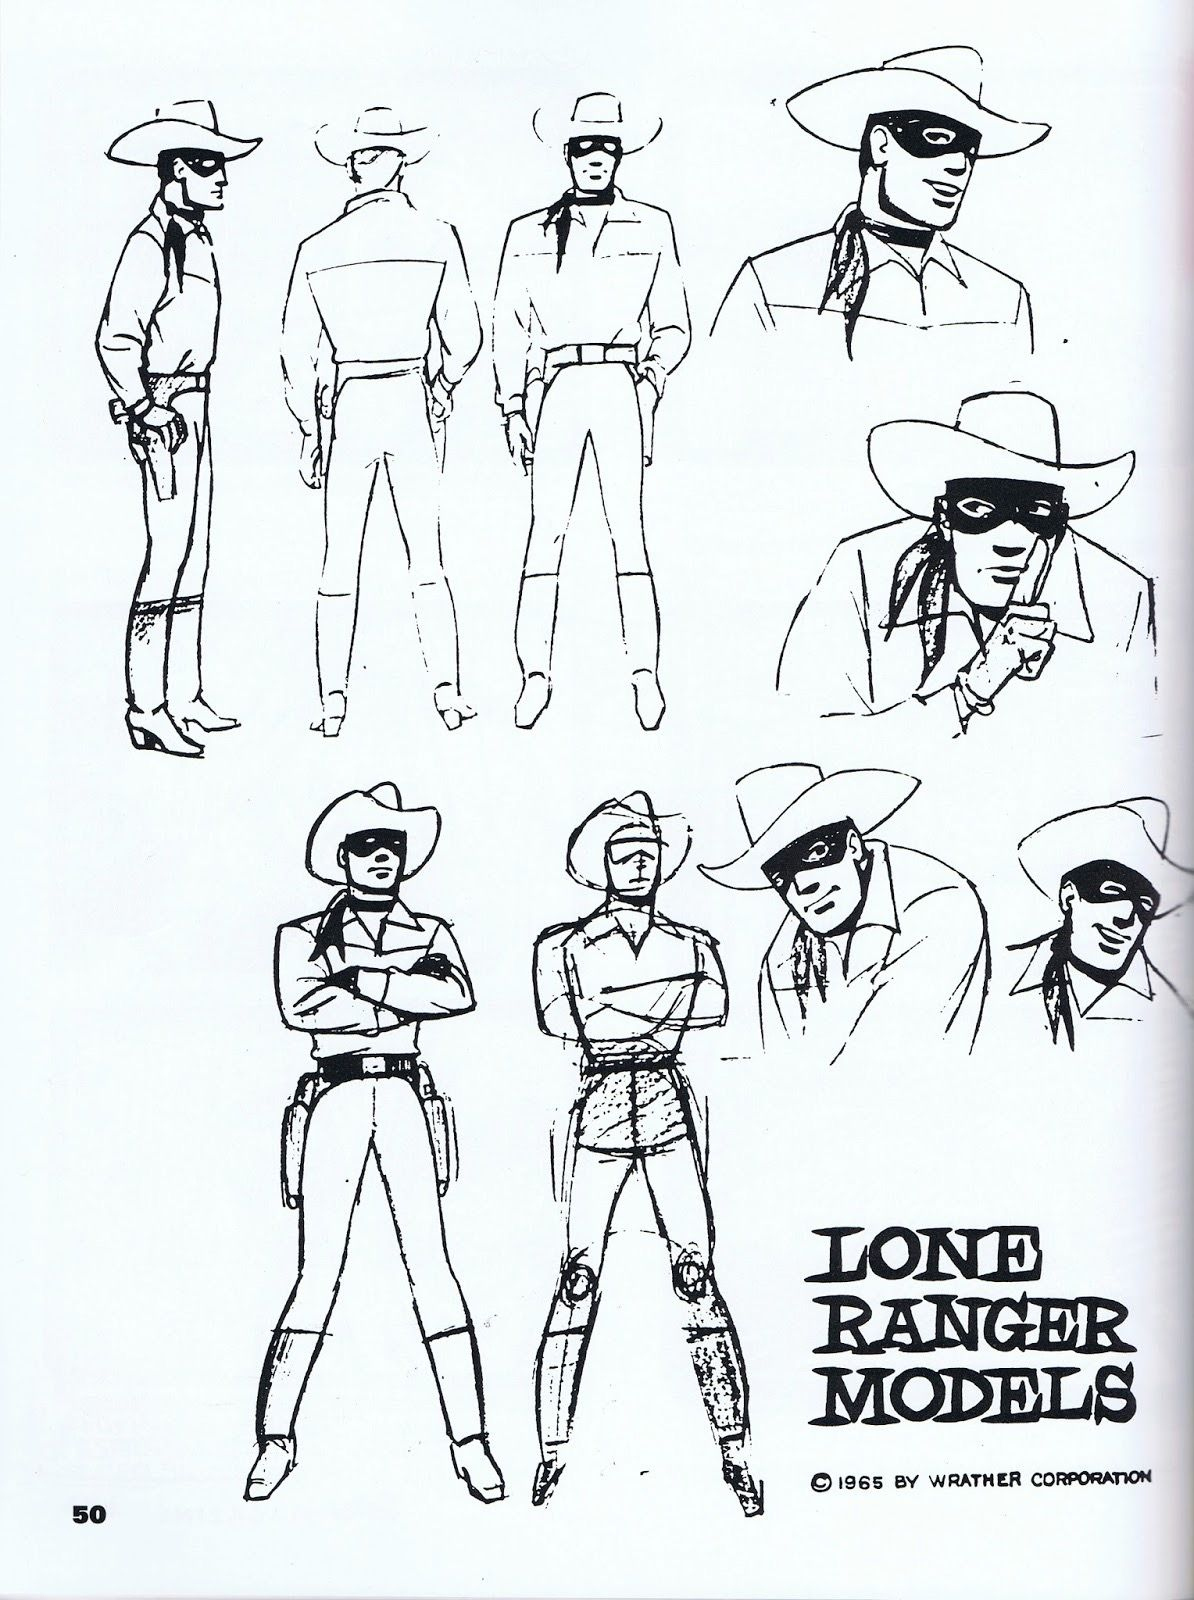 Production Art For The Pretty Weird 1966 Cartoon The Lone Ranger